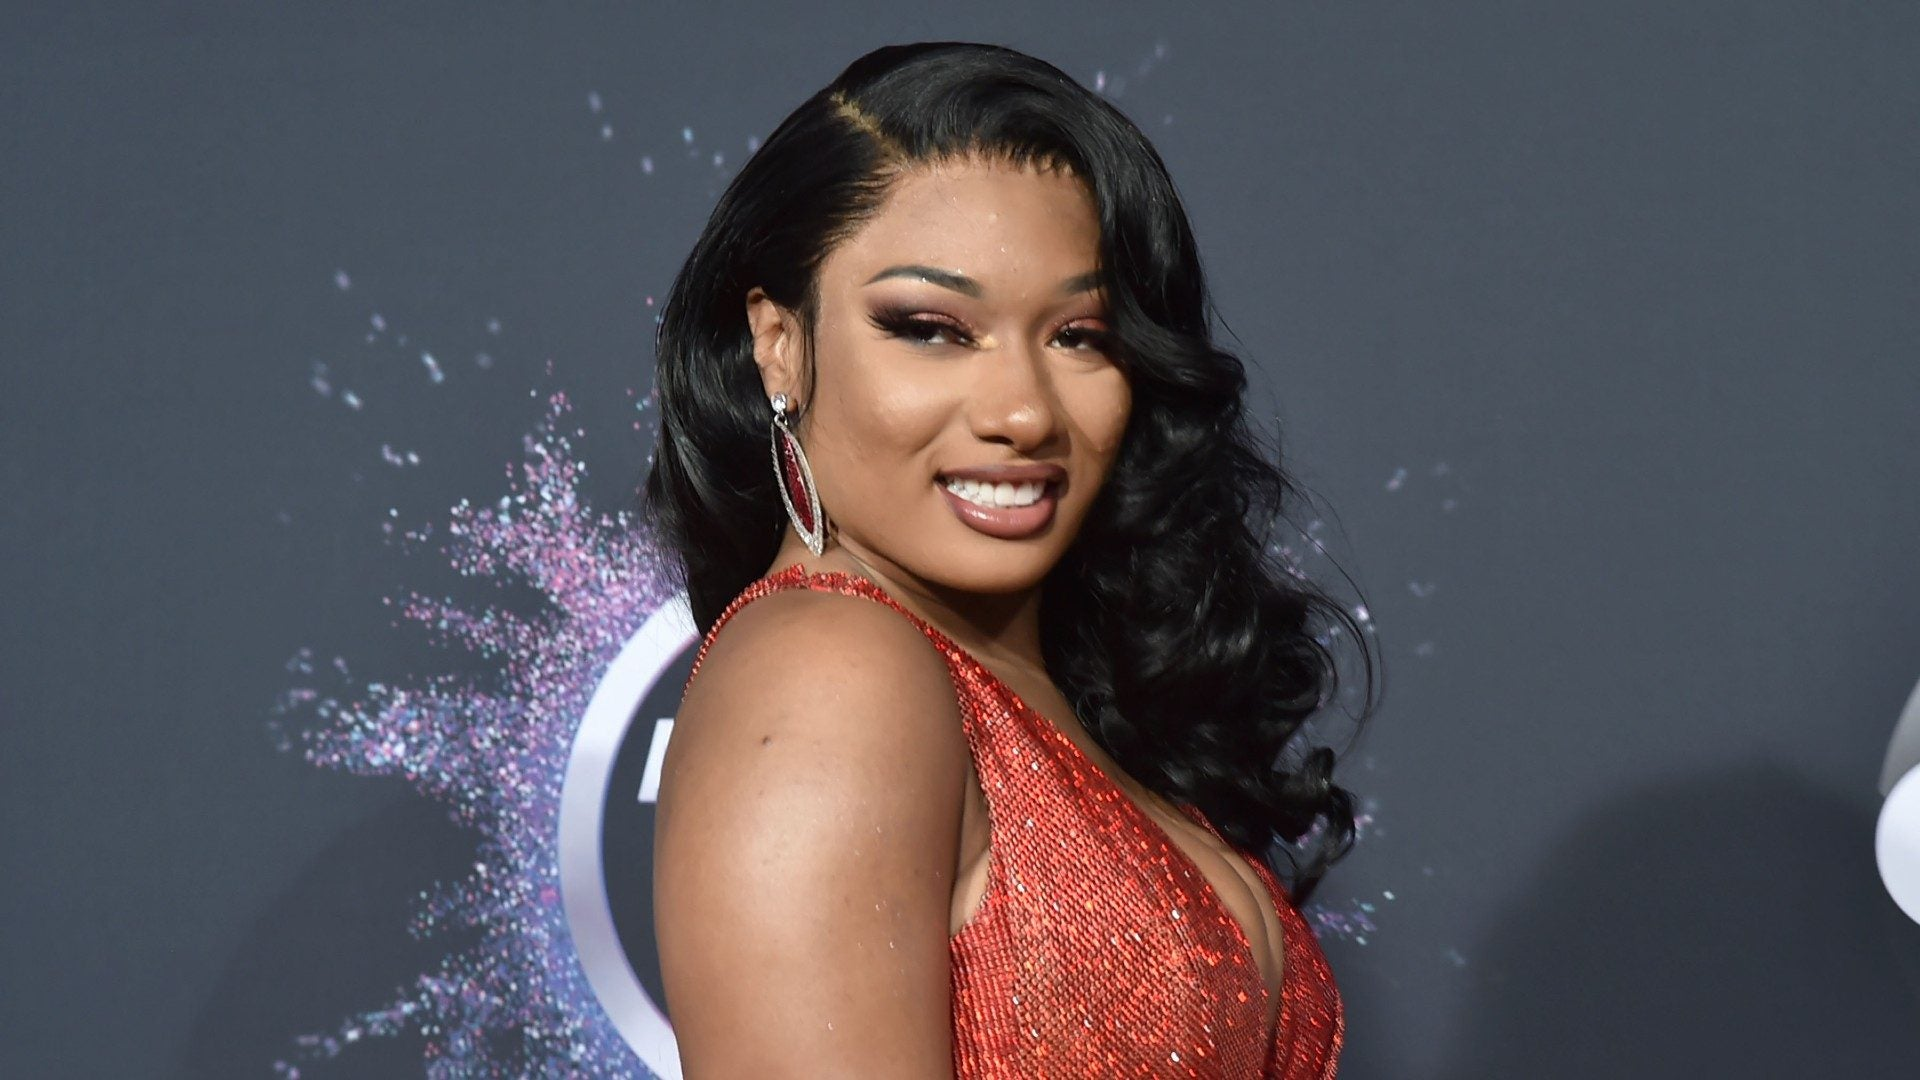 Megan Thee Stallion Did Her Own Makeup For Her First Revlon Photo Shoot